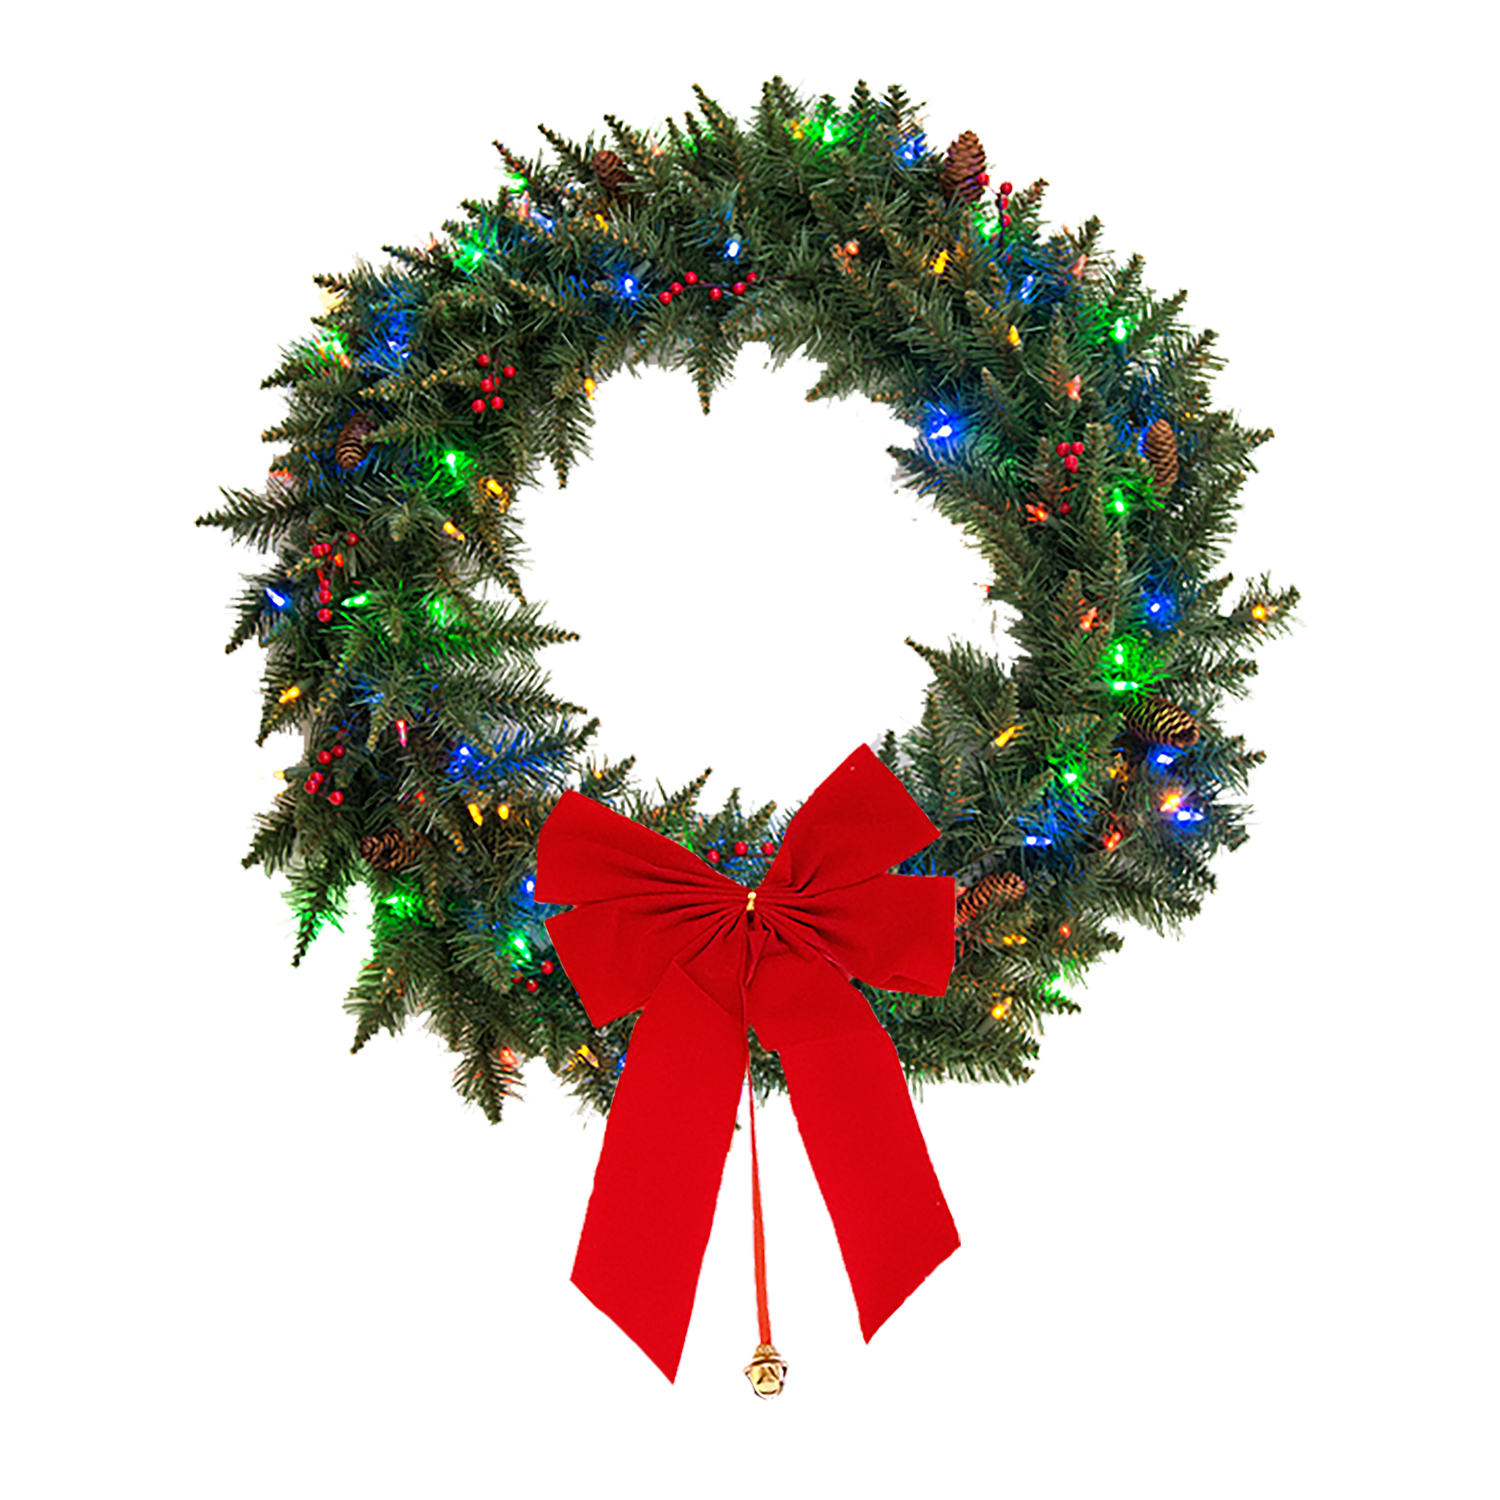 Mr. Light 24 Inch Wreath, 35 Dual Color LED's (Switchable Between Warm White and Multi-color), Red Berries and Pine Cones, 120 Tips, Indoor/Outdoor Battery Box with 6hr/ 24 hr Auto-Restart Electronic Timer.  Includes Removable Unlit Red Bow.